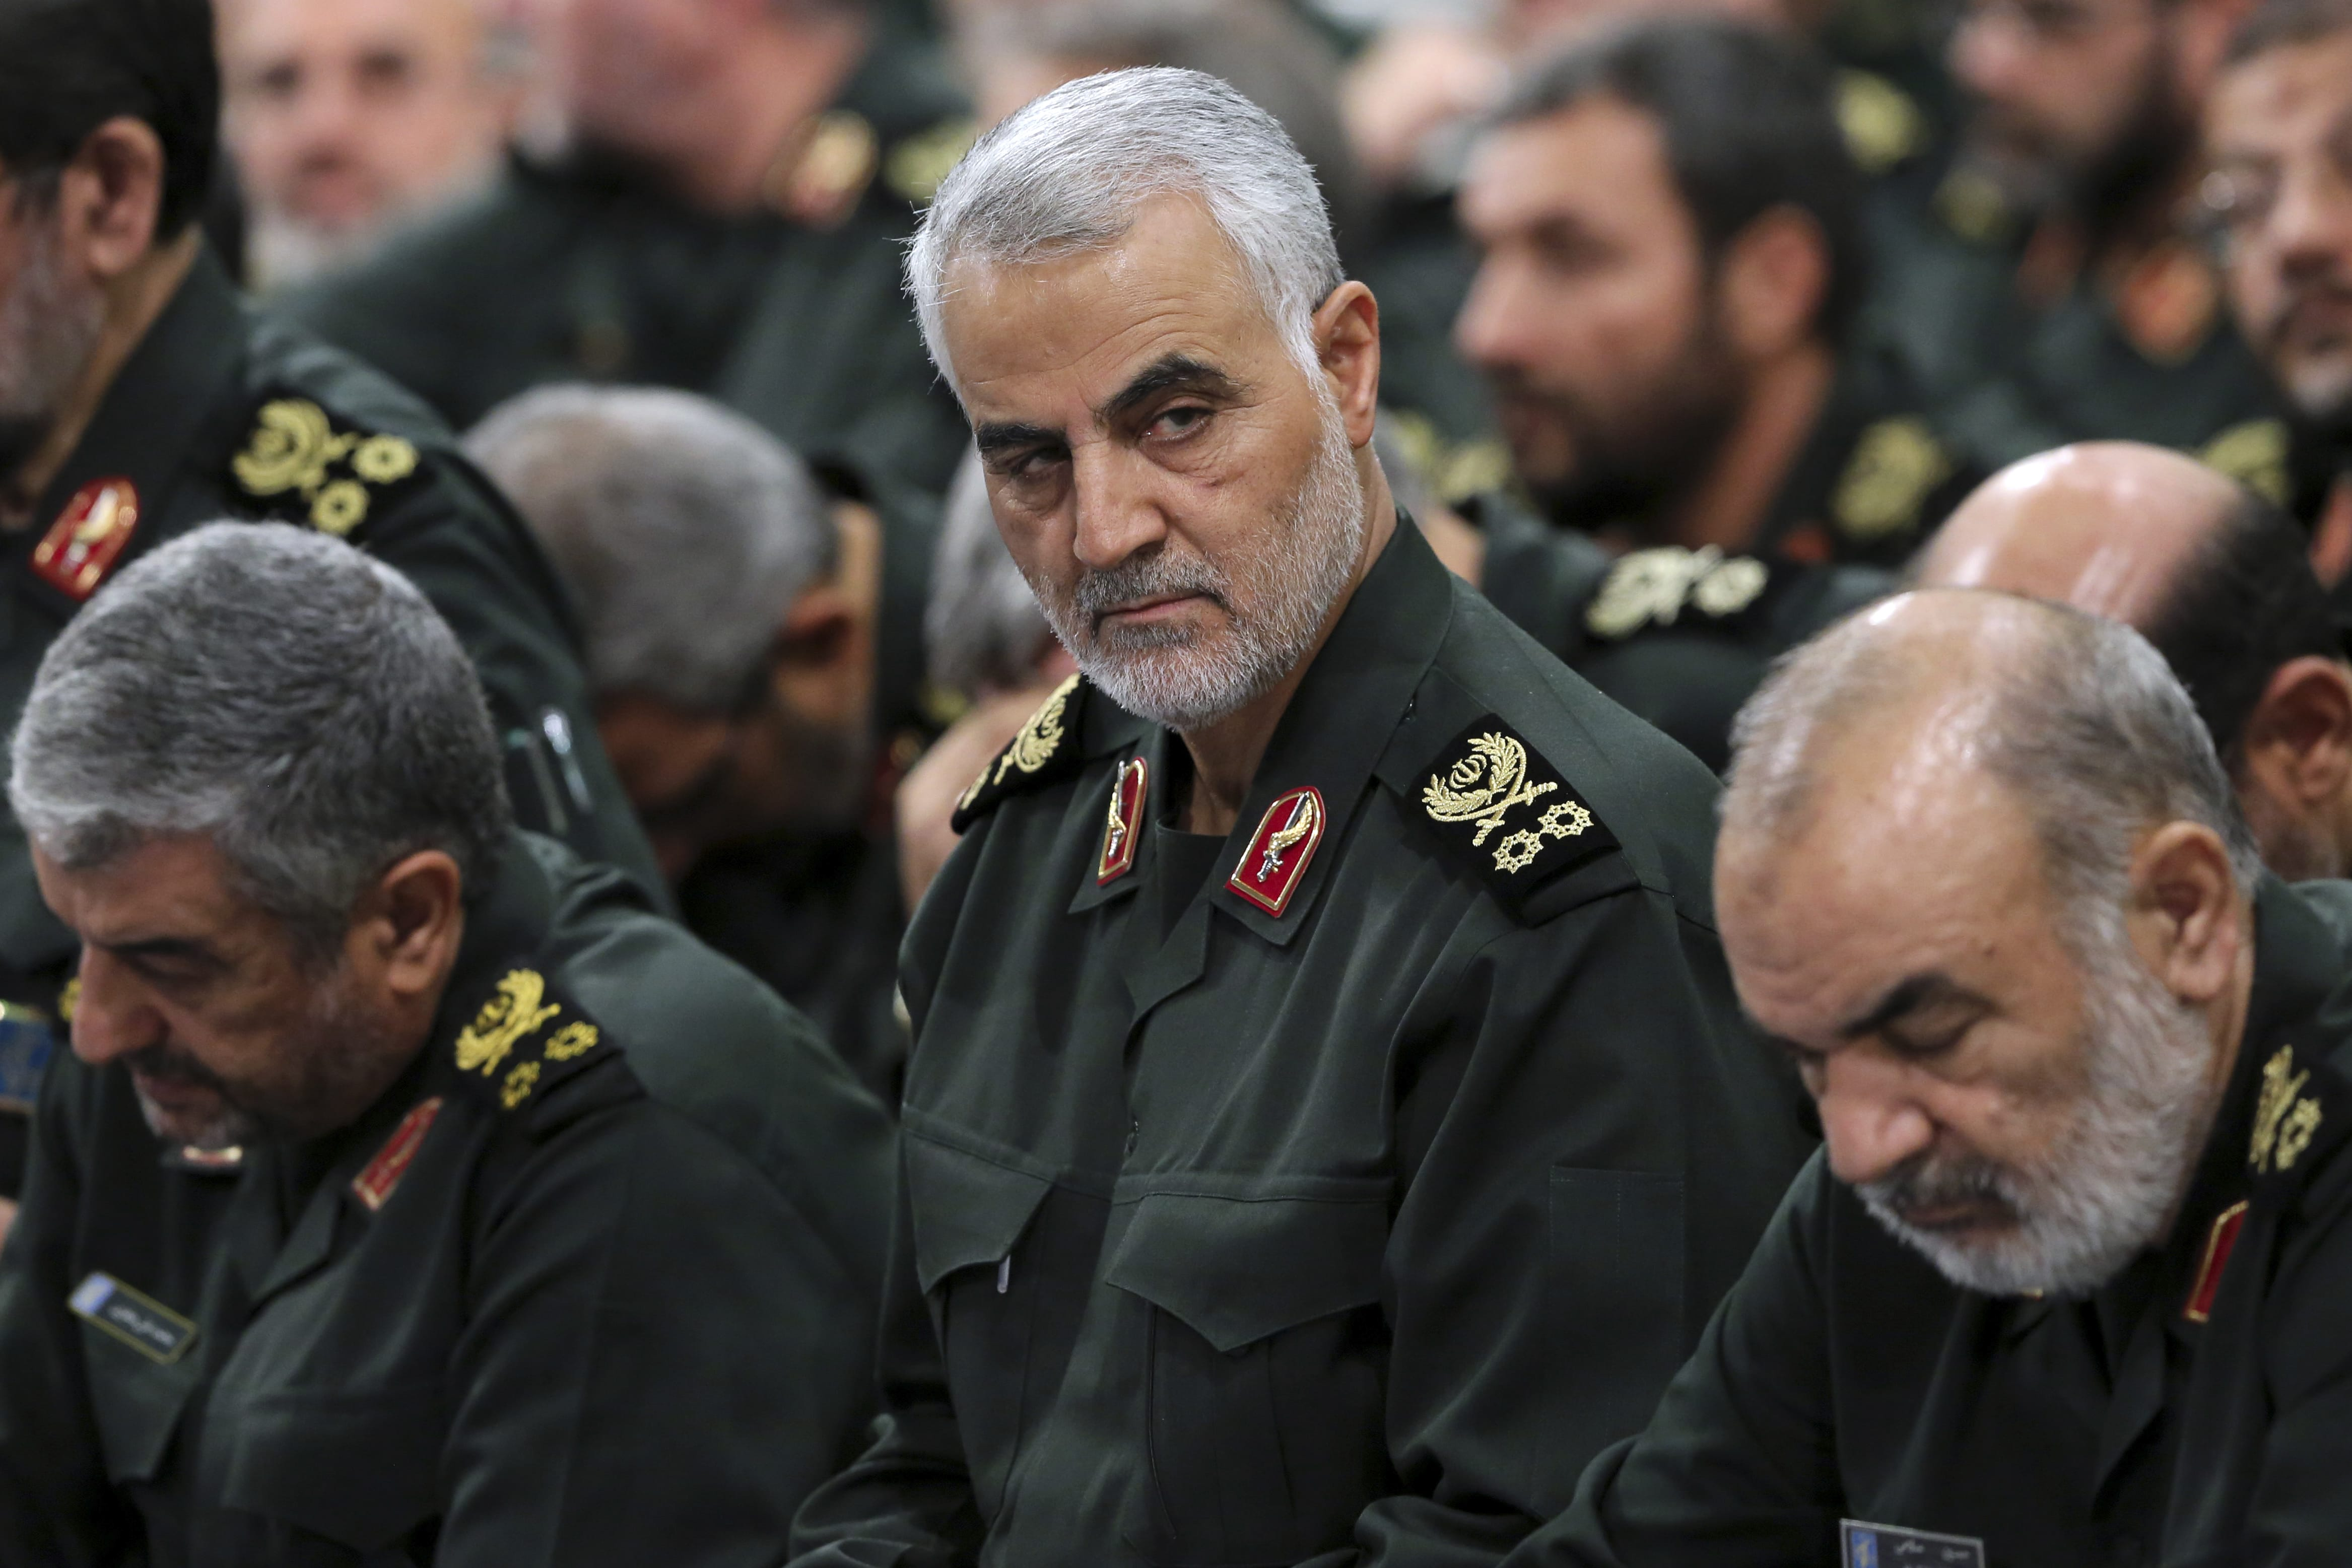 Quds Force Commander: We've Inflicted More Losses to America than It's Done to Us